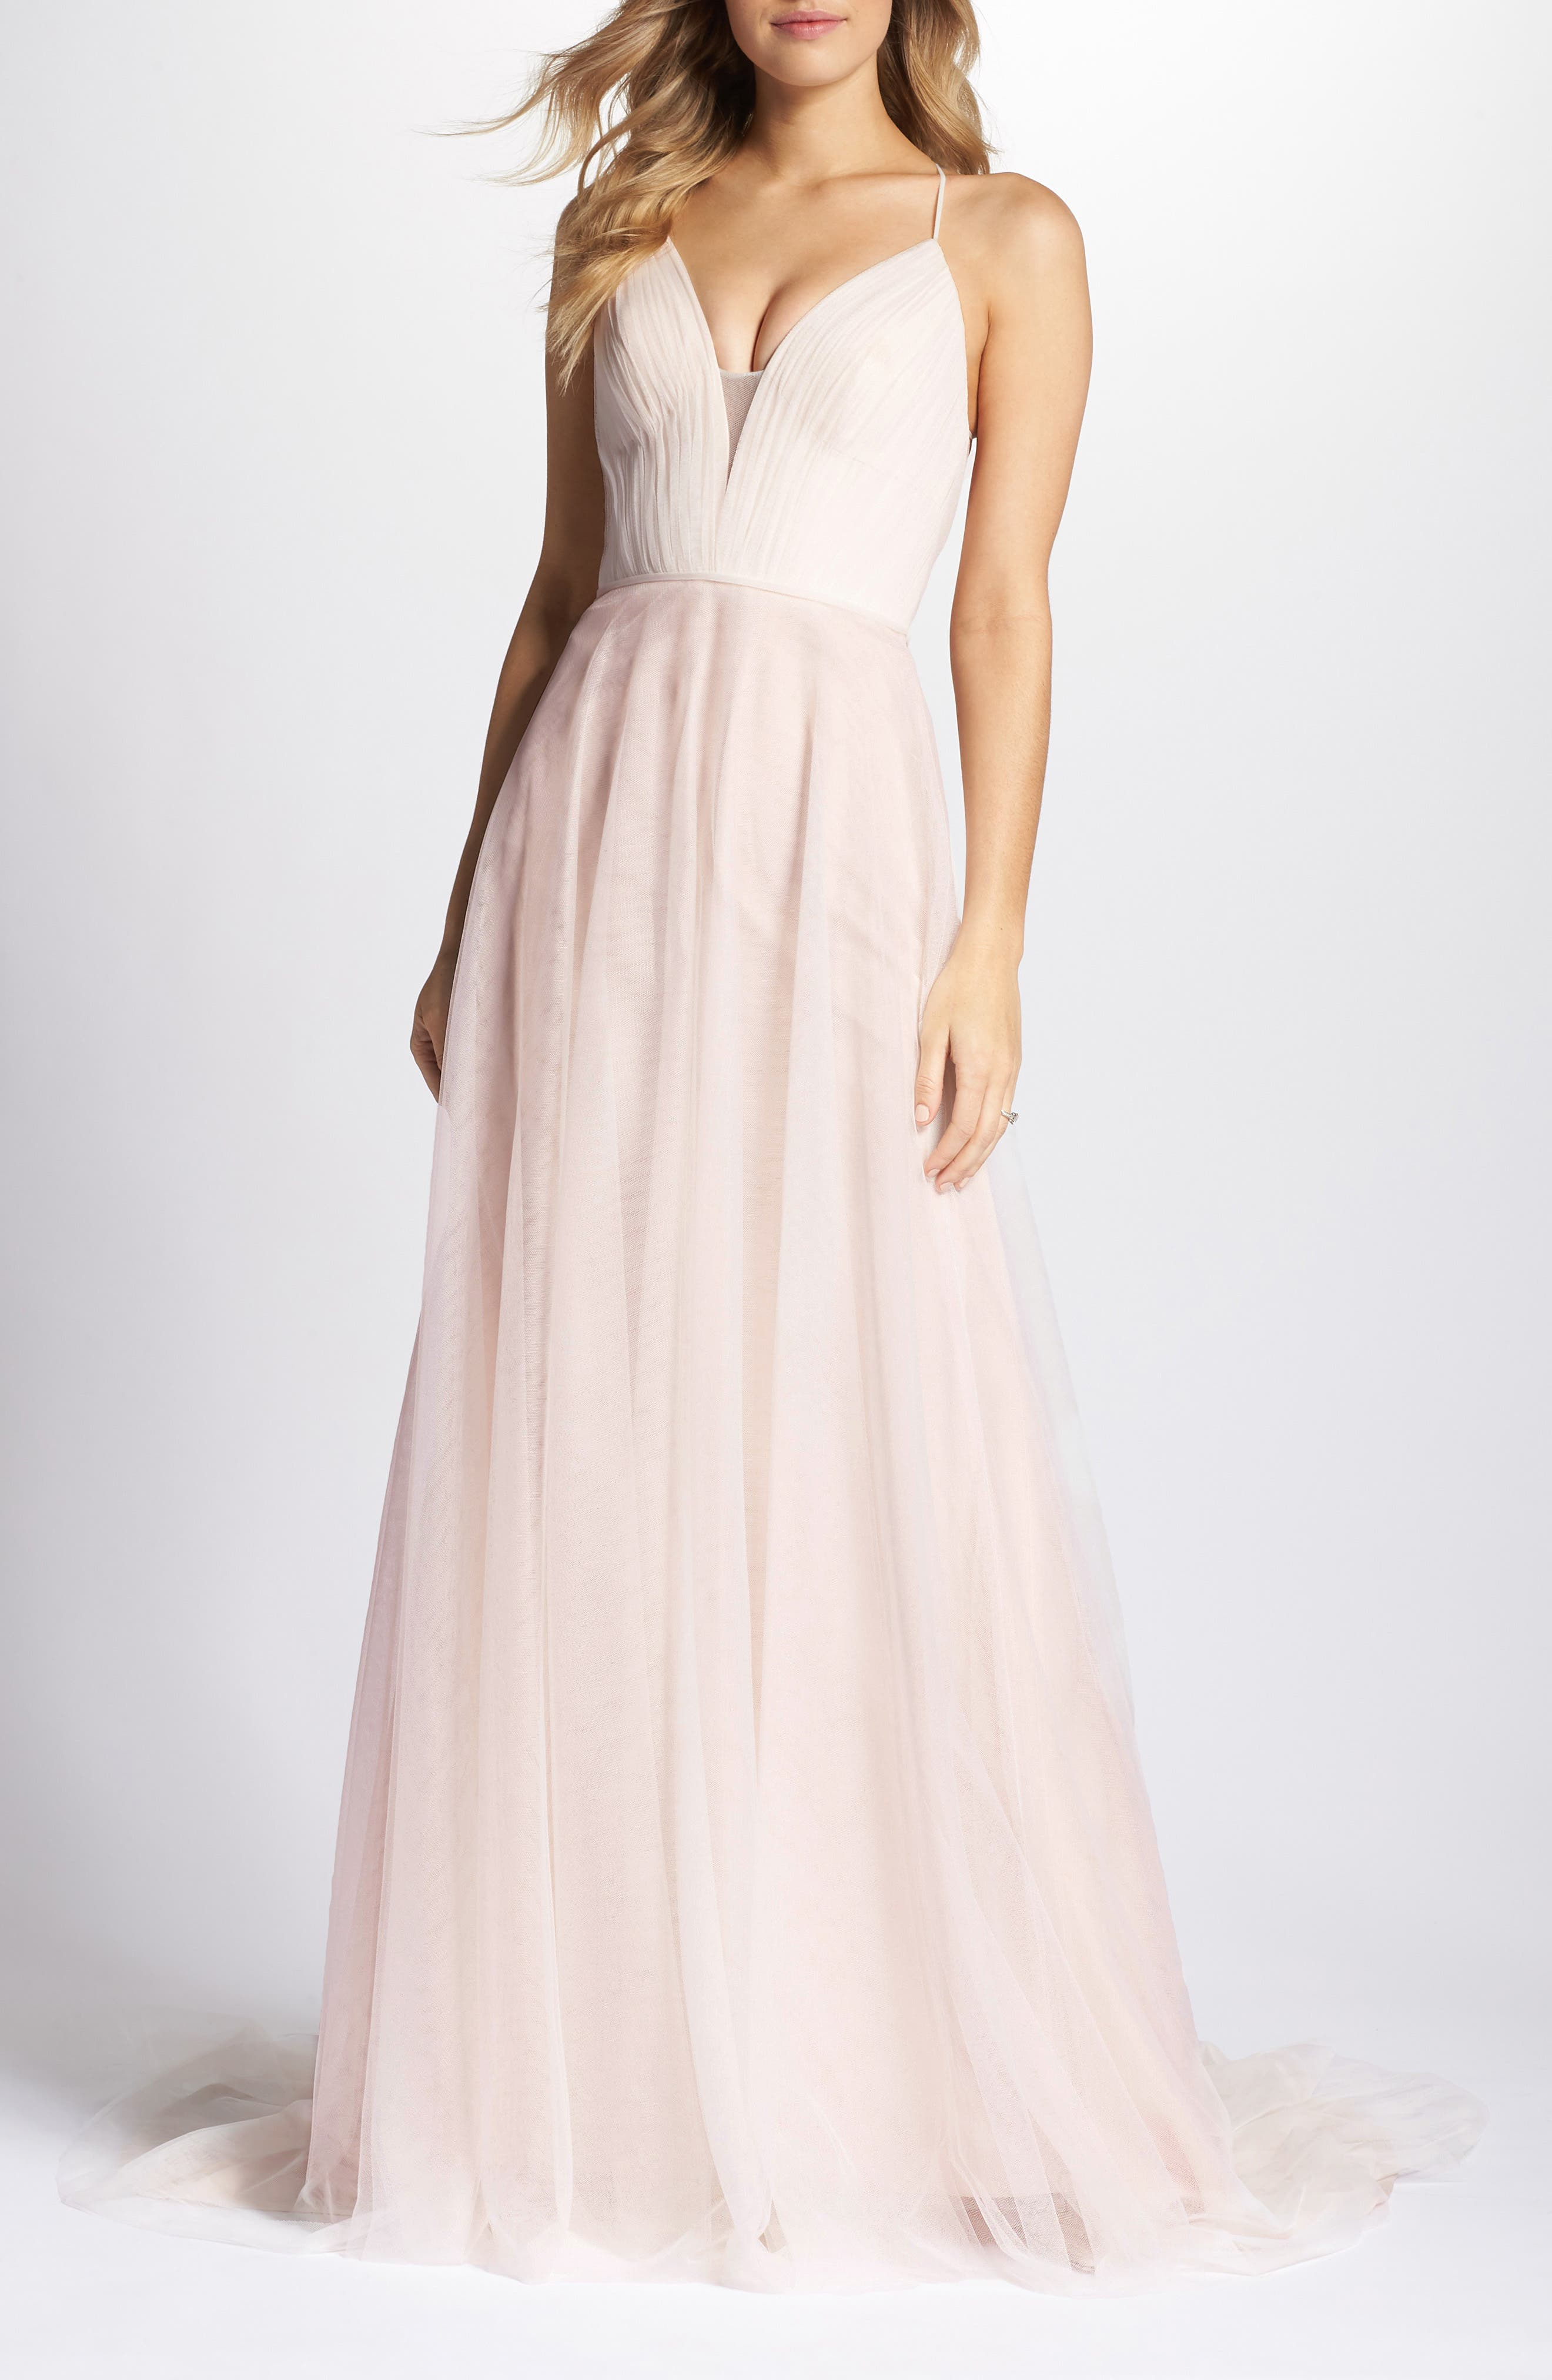 Plunging A-Line Gown,                         Main,                         color, IVORY/TEA ROSE